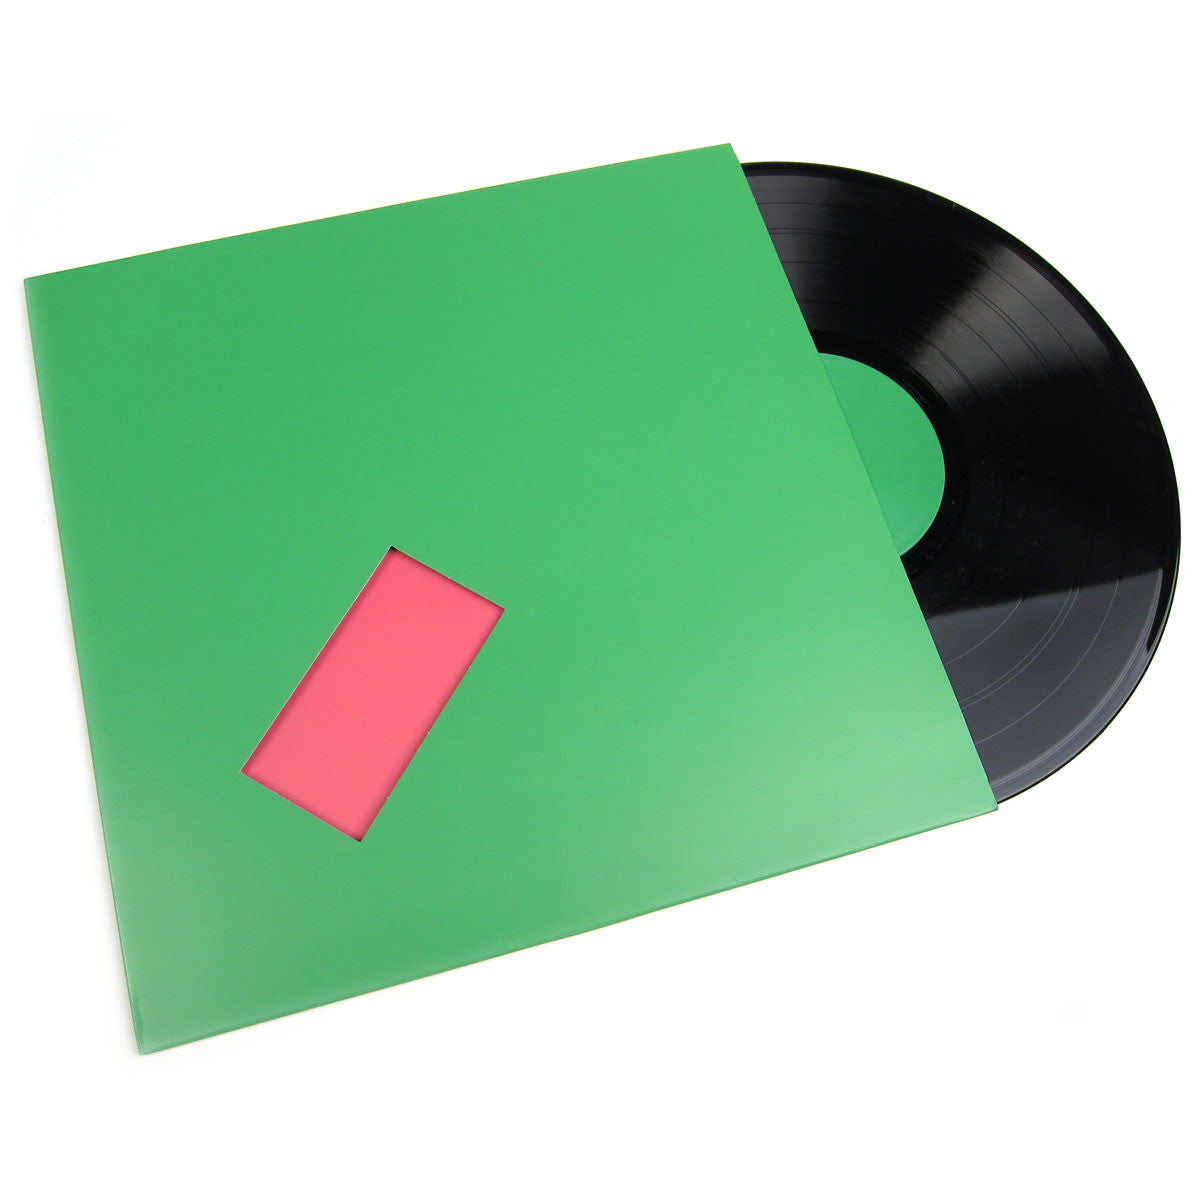 Gil Scott-Heron & Jamie xx: We're New Here (with FREE MP3 Download) LP